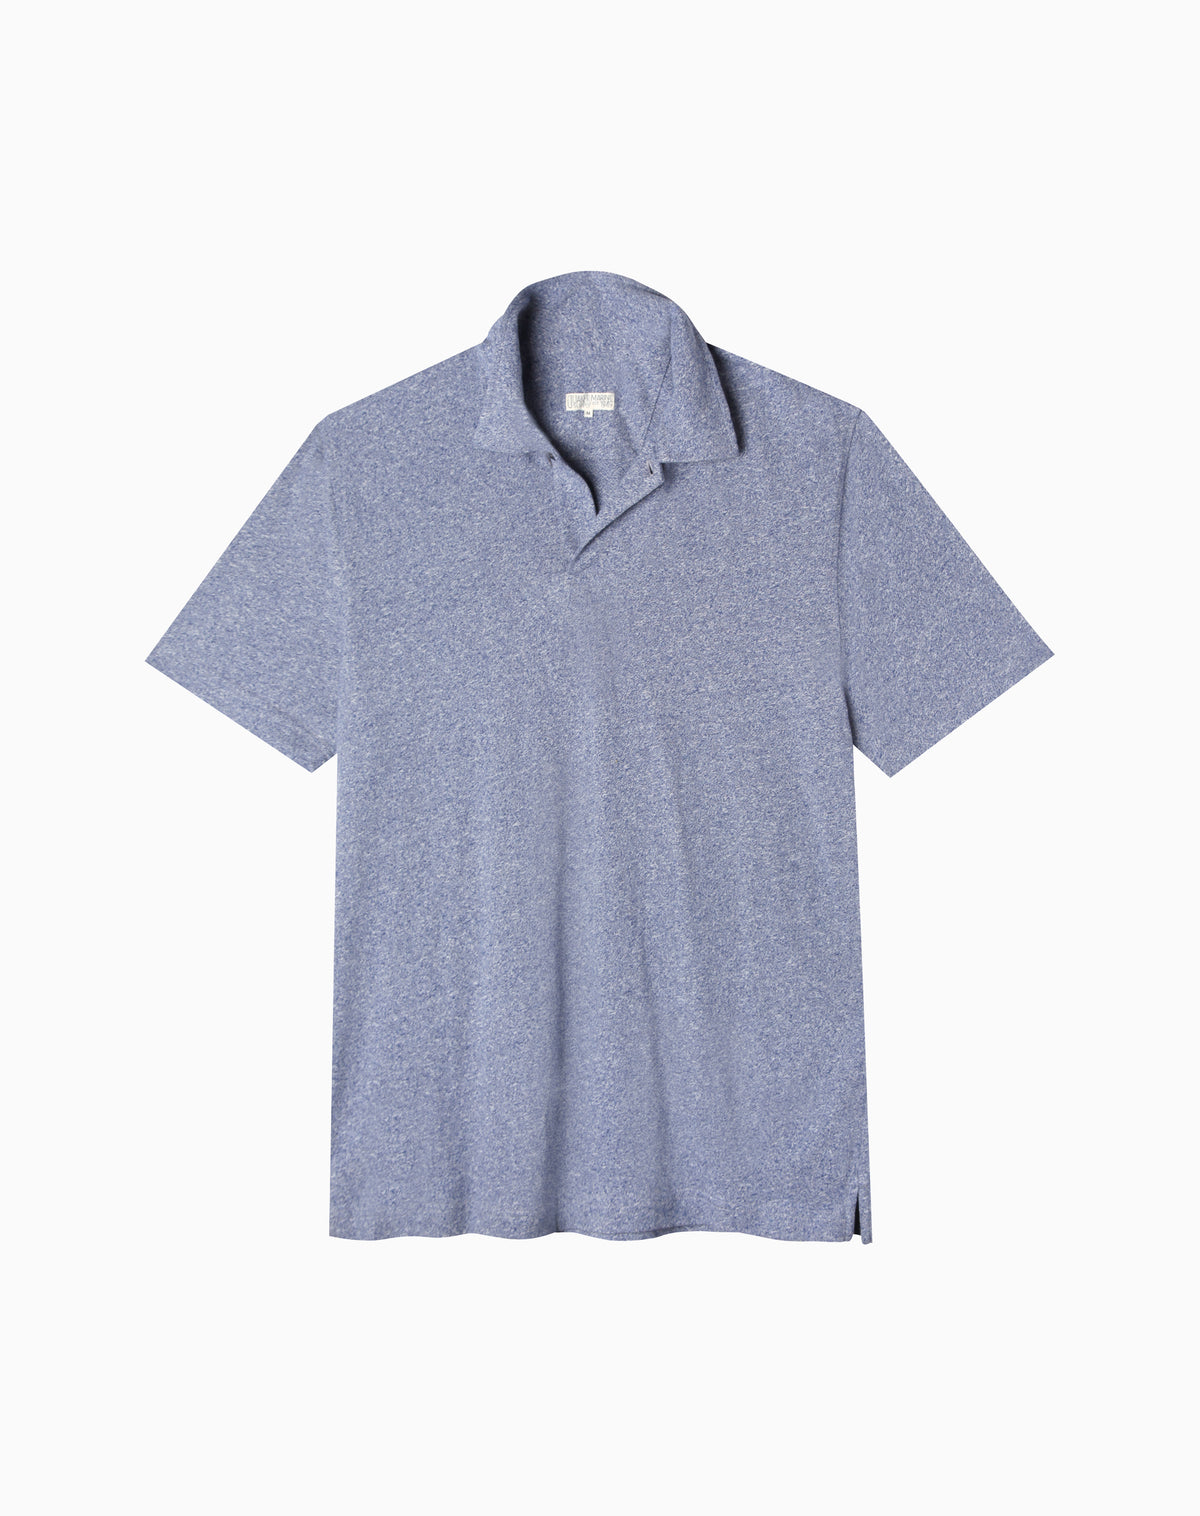 Polo in Heather Blue